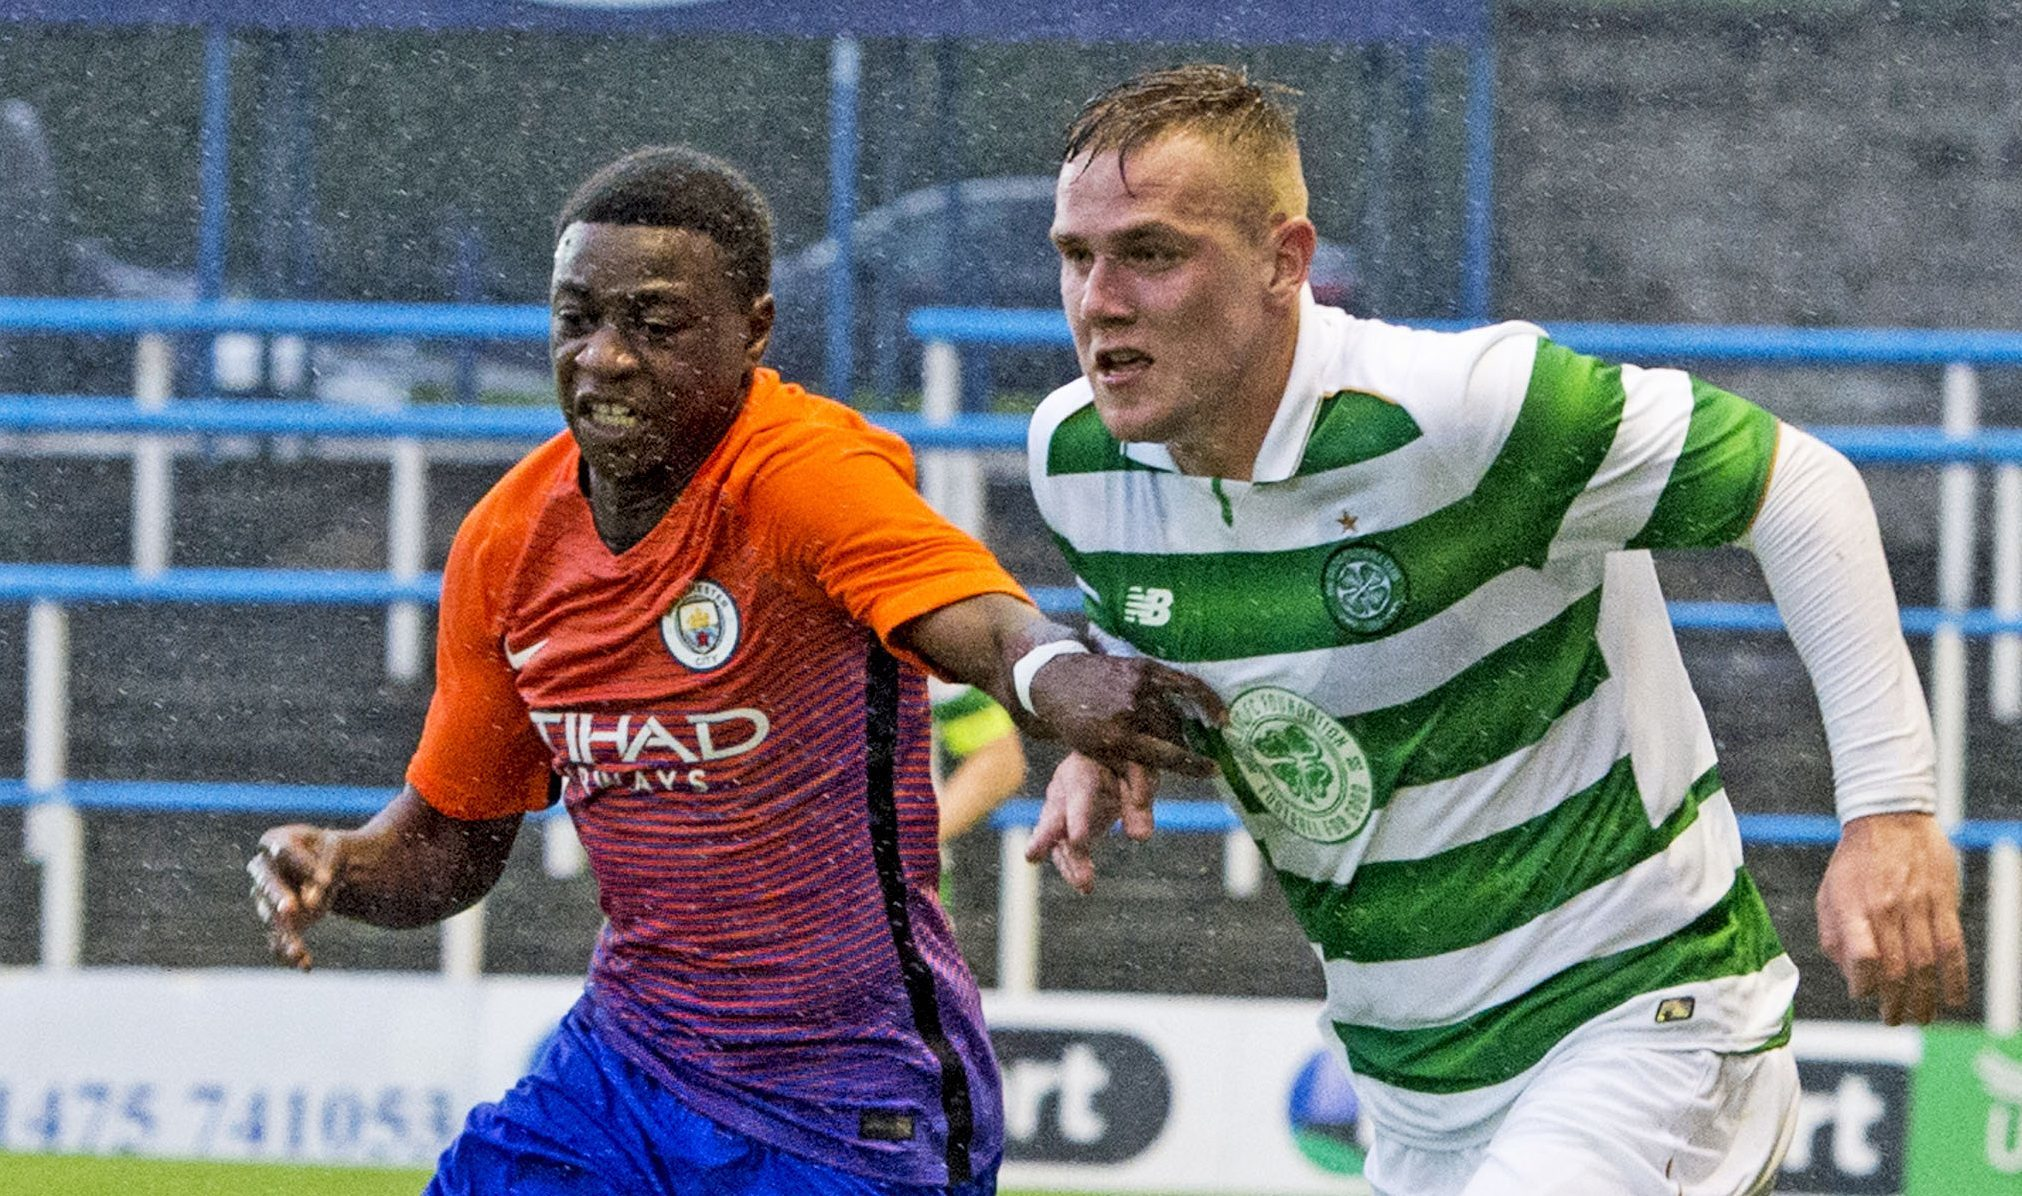 Manchester City youngster Aaron Nemane (left) in action against Celtic's youth team last year (SNS Group / Paul Devlin)